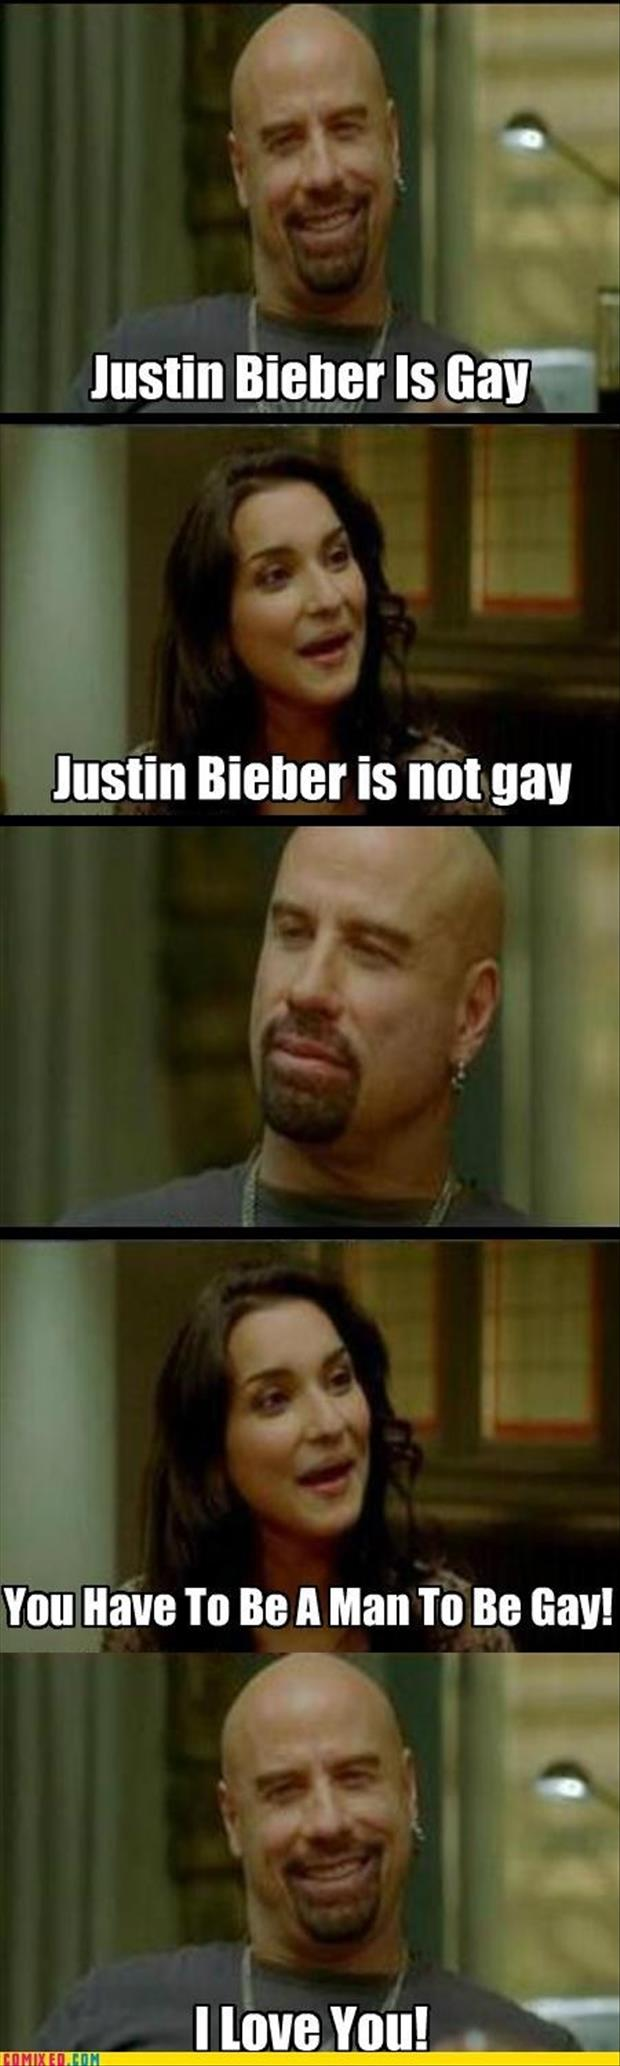 justin beiber is gay